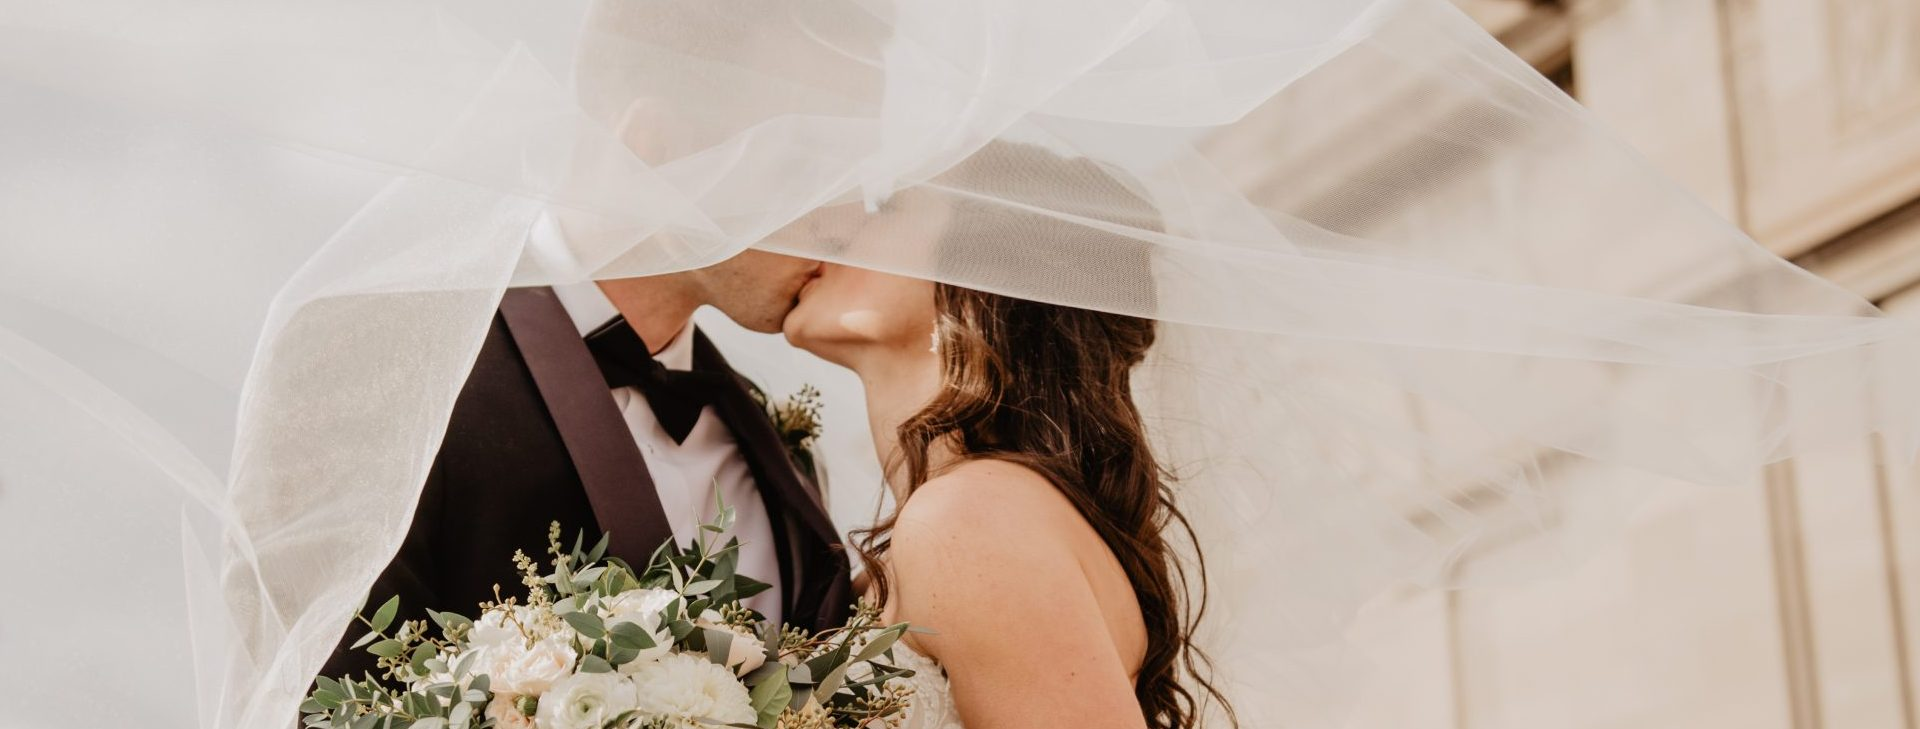 Wedding Veil Kiss